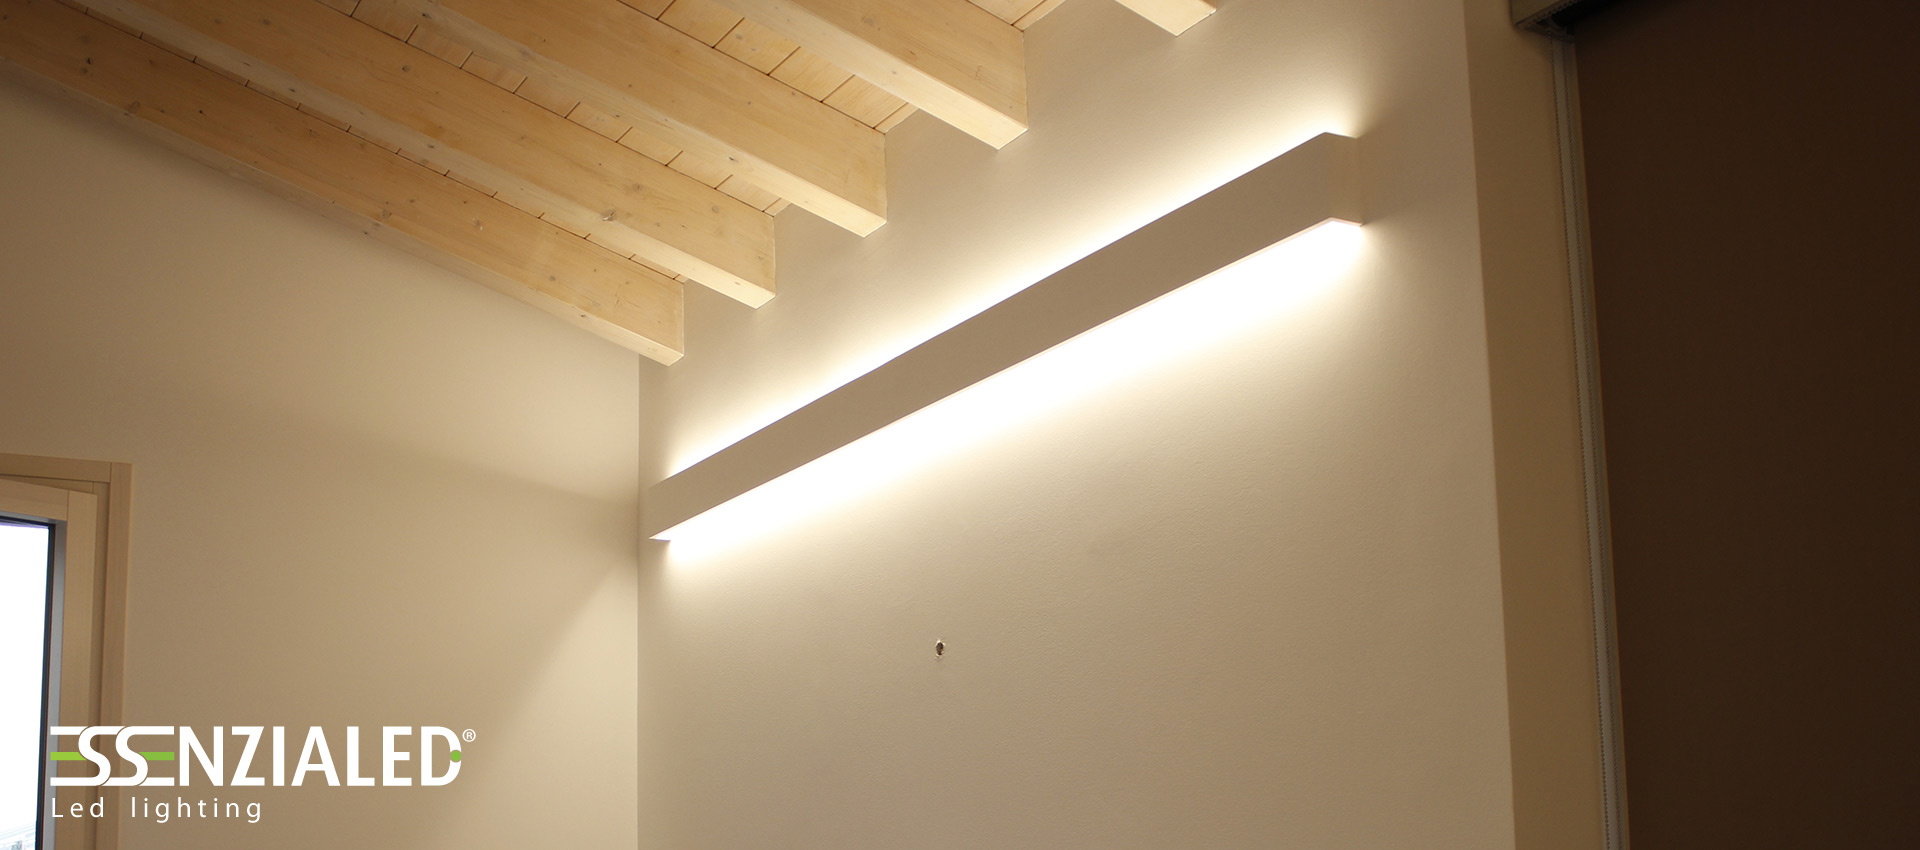 Luci a led per soffitto dz22 regardsdefemmes - Soppalco cartongesso portante ...